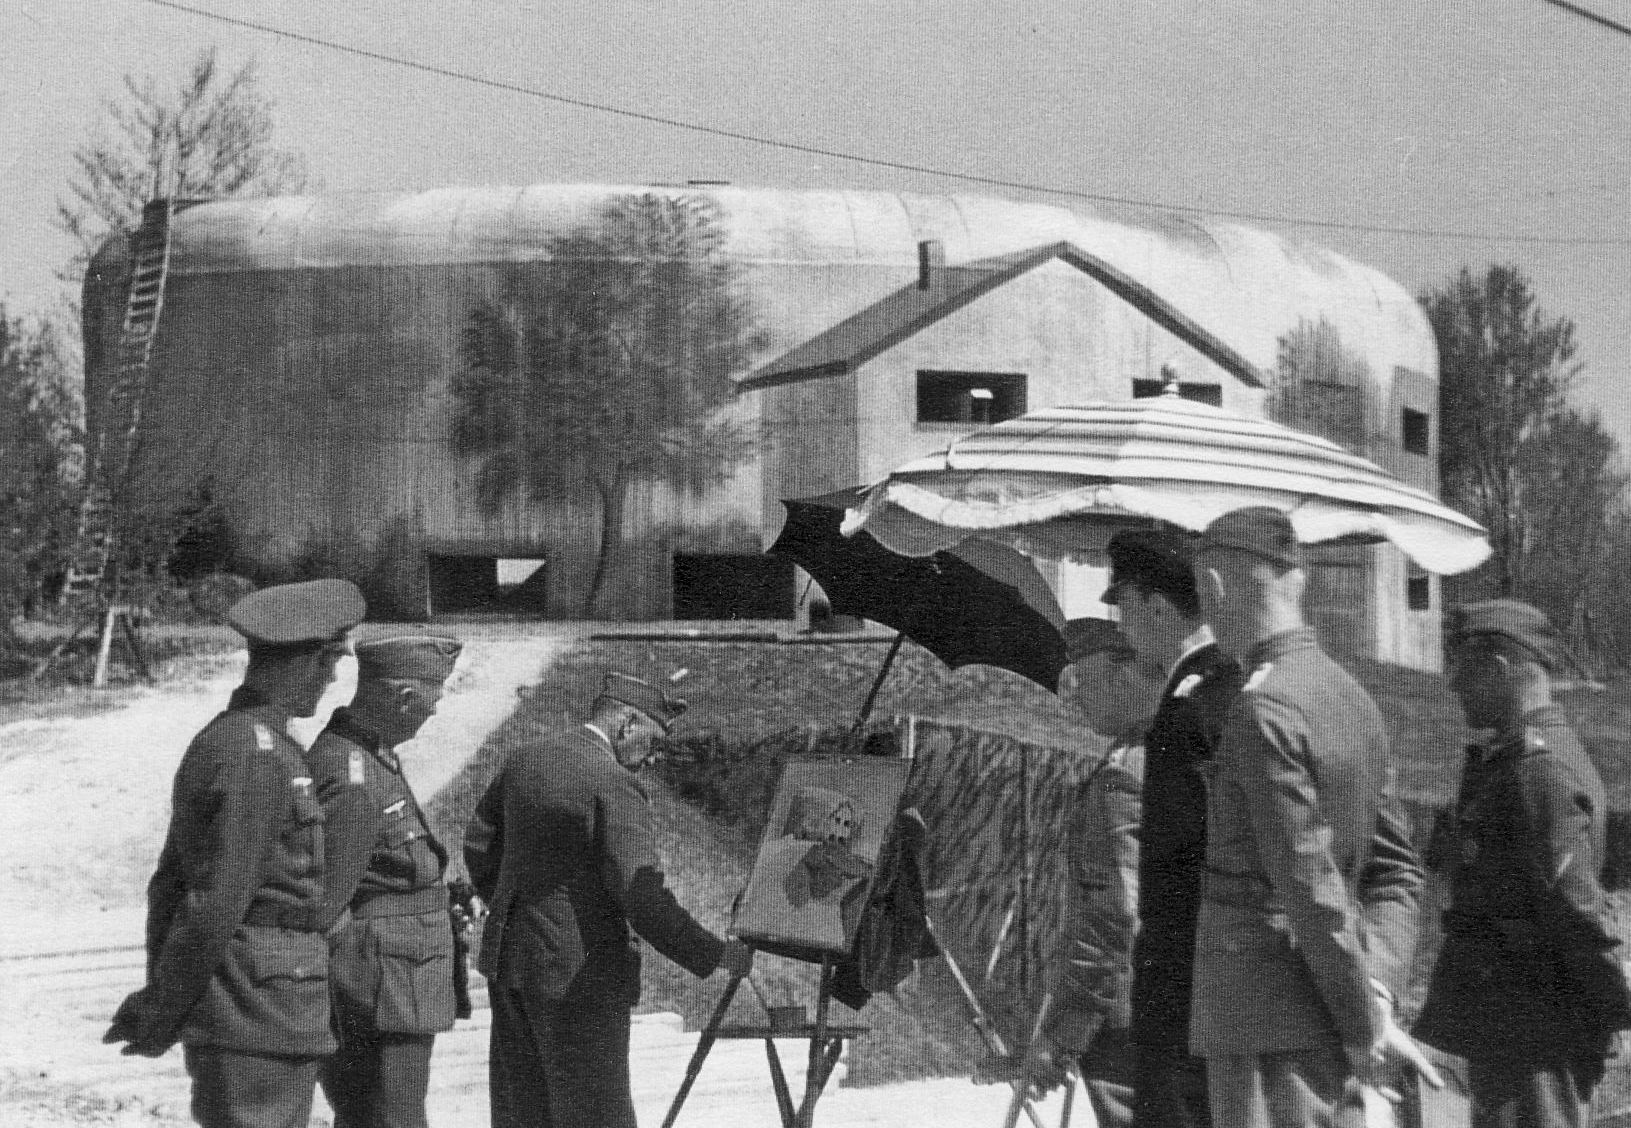 Vollbehr painting Bt Todt. (© Bundesarchiv)